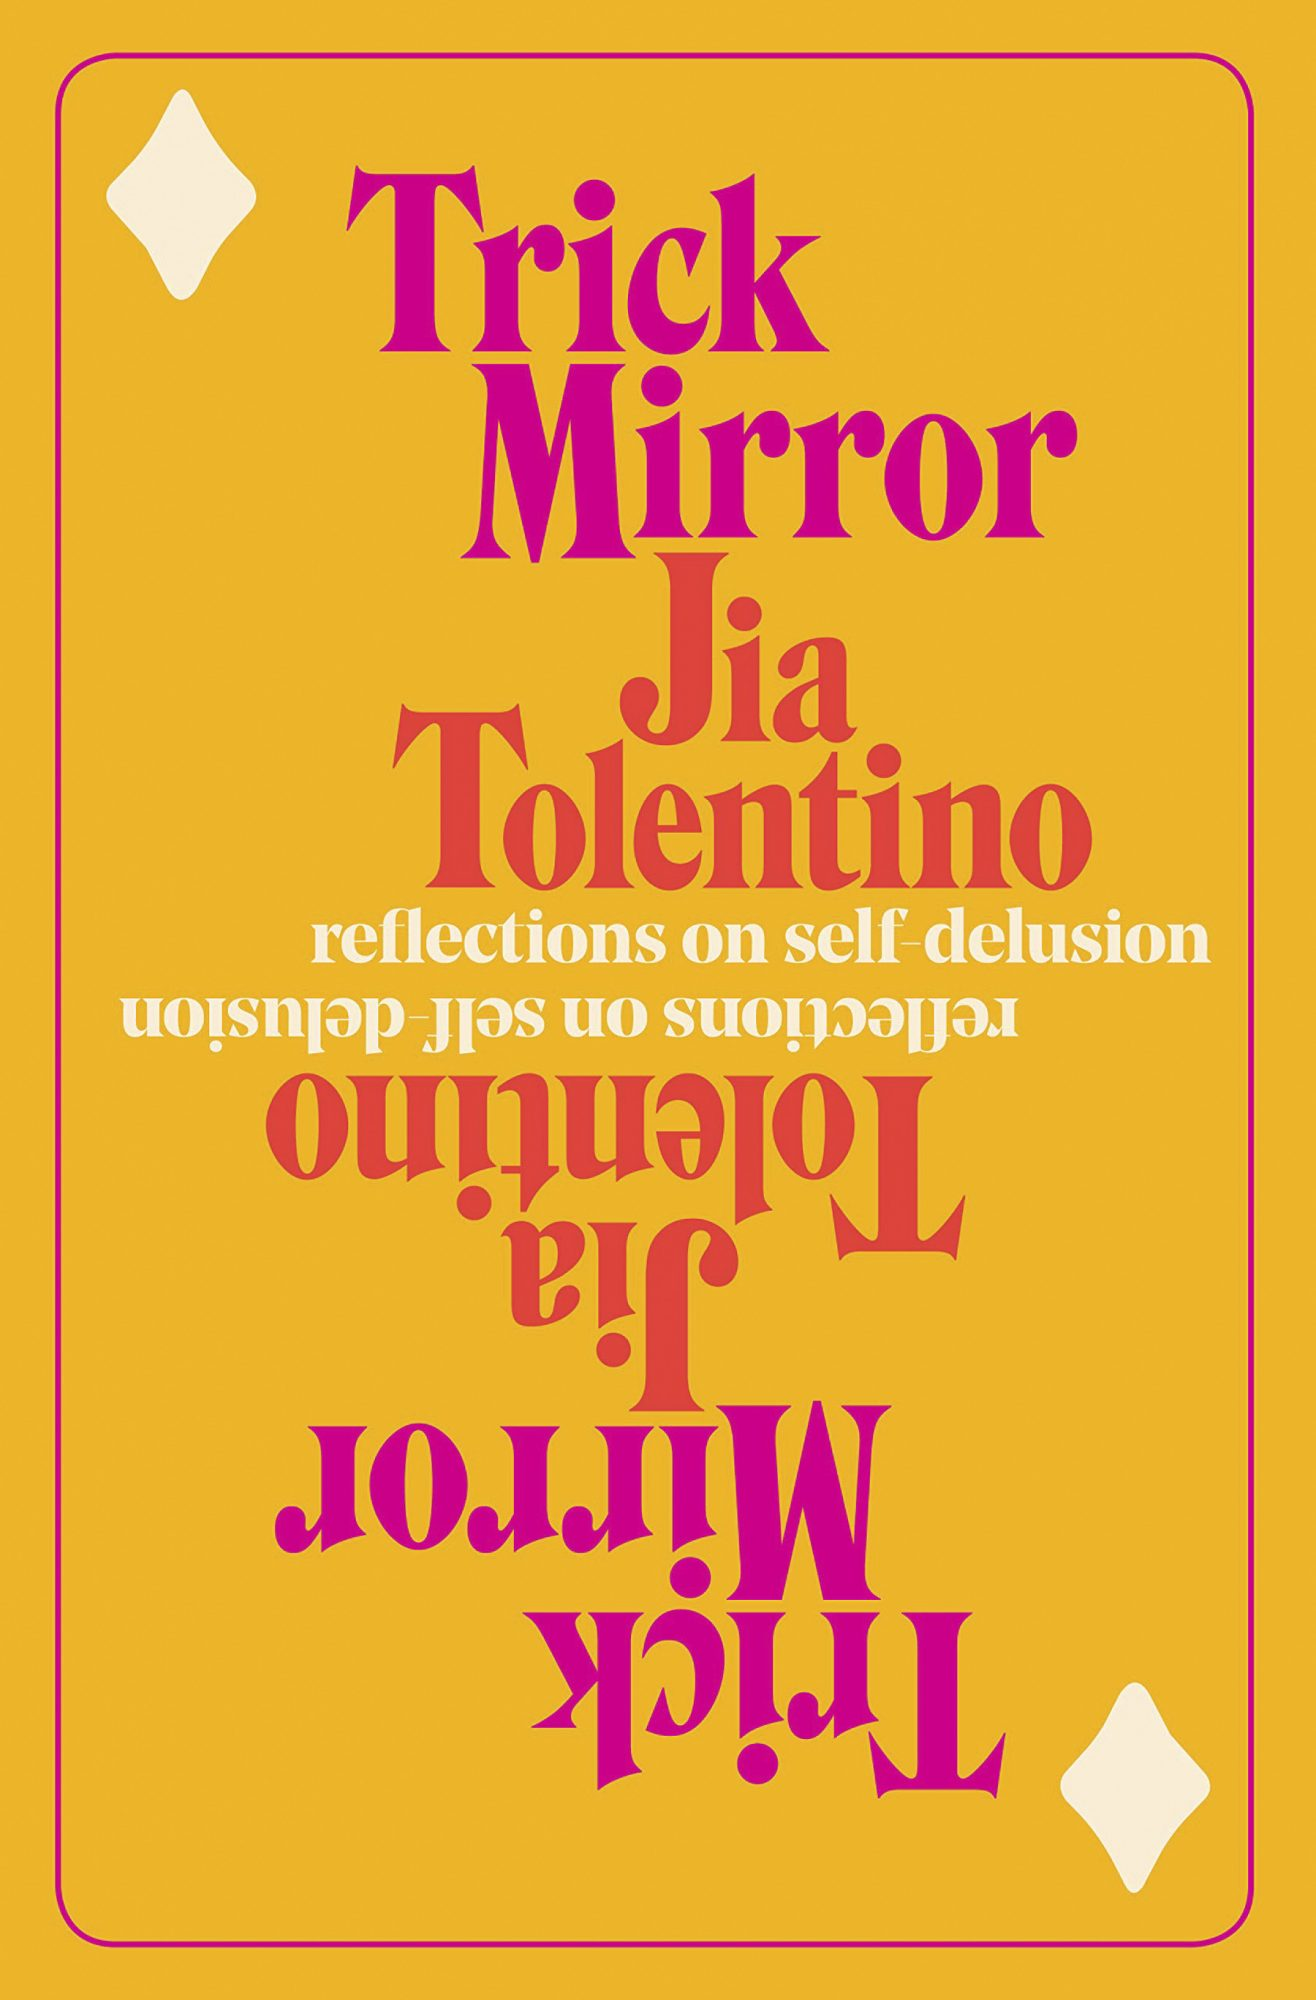 Trick Mirror: Reflections on Self-Delusion Book by Jia Tolentino CR: Random House